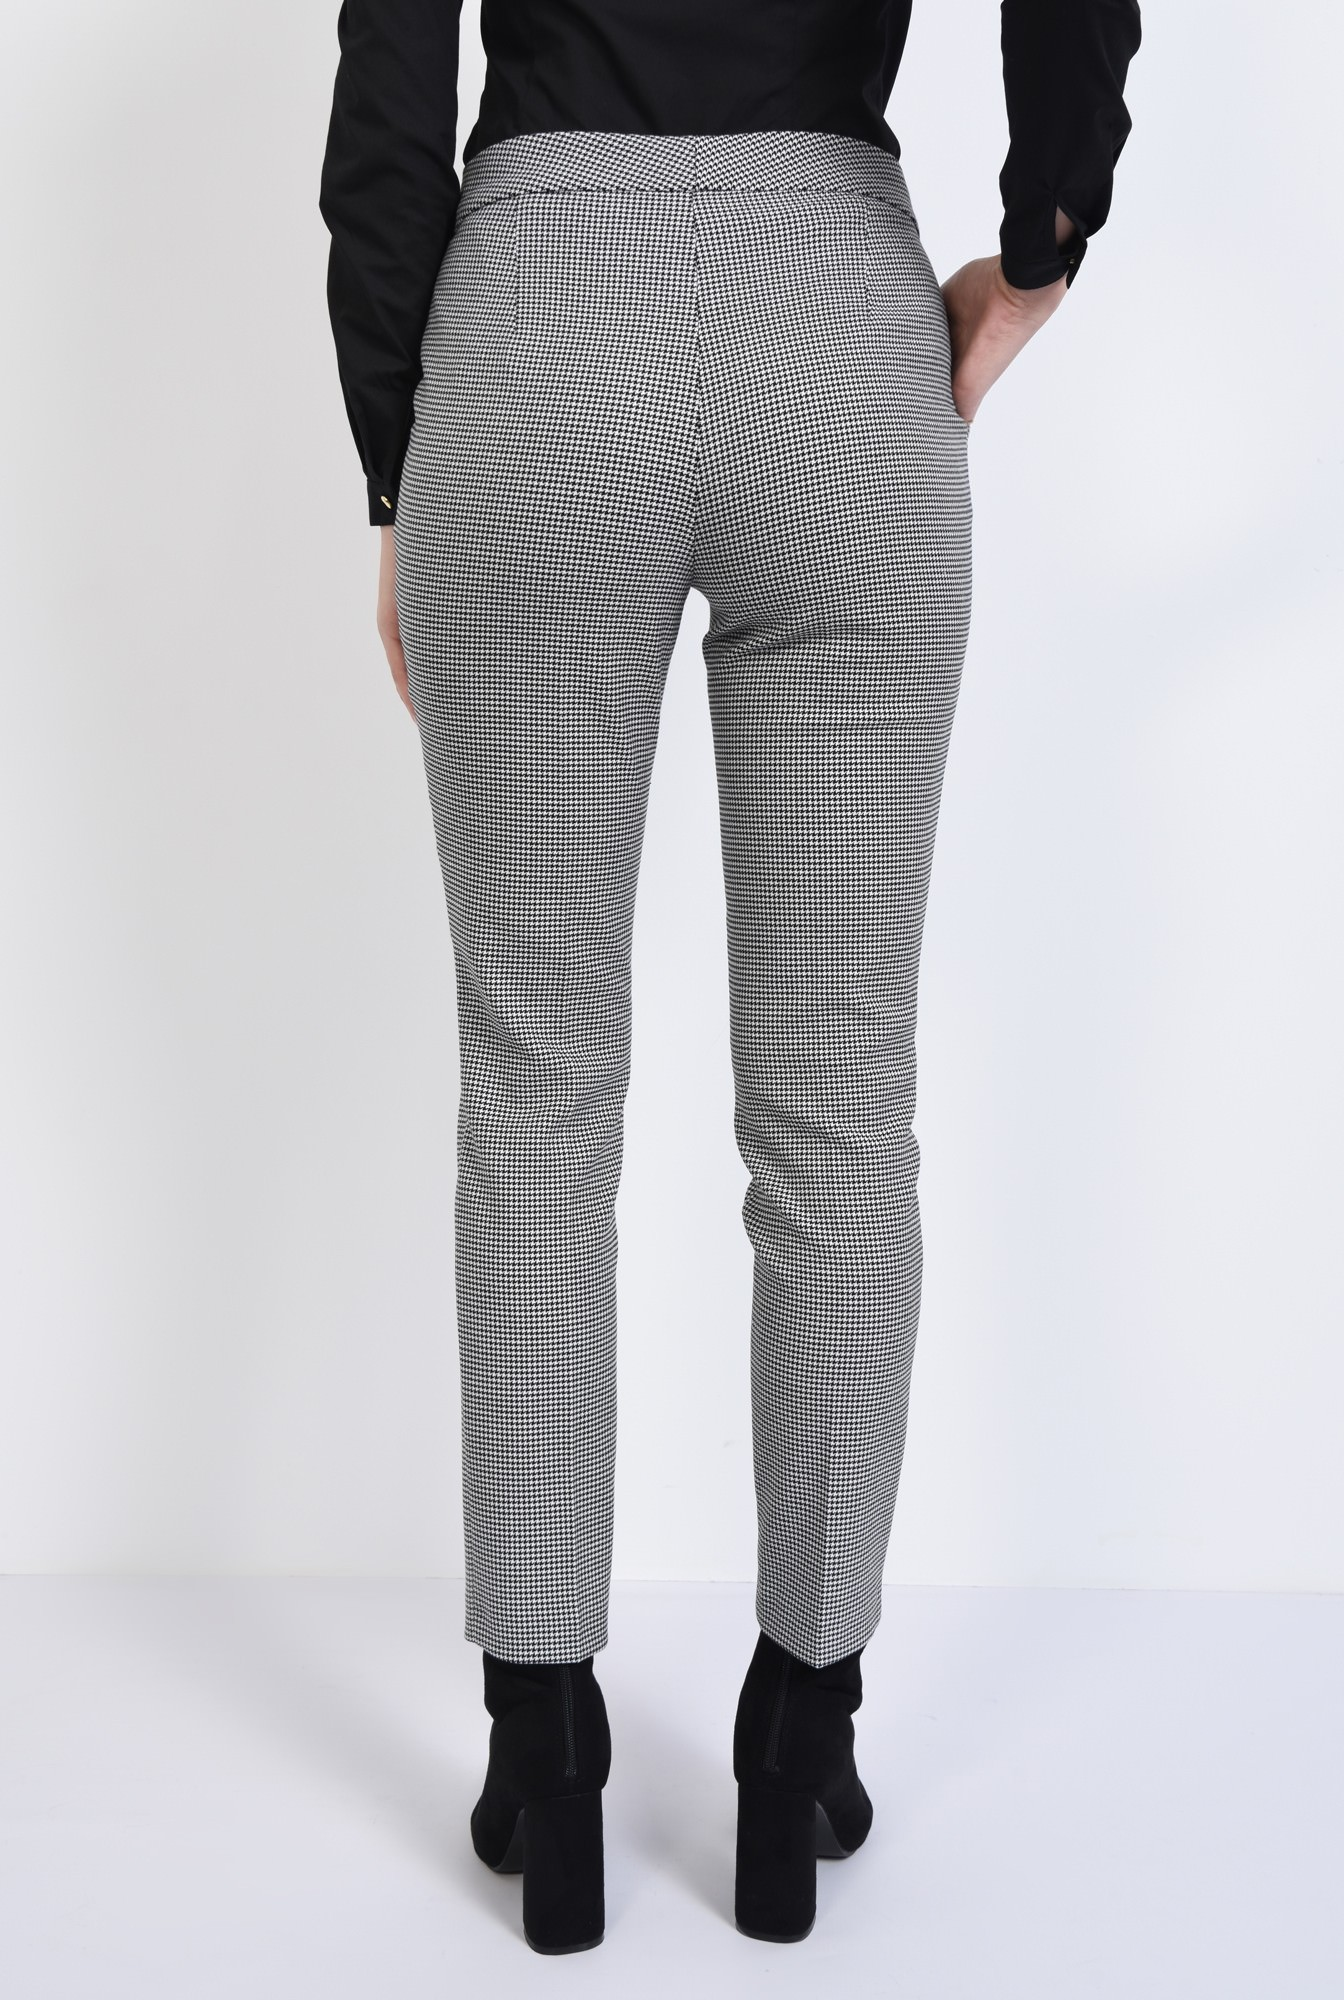 1 - PANTALON CASUAL CONIC PT 186-PEPIT